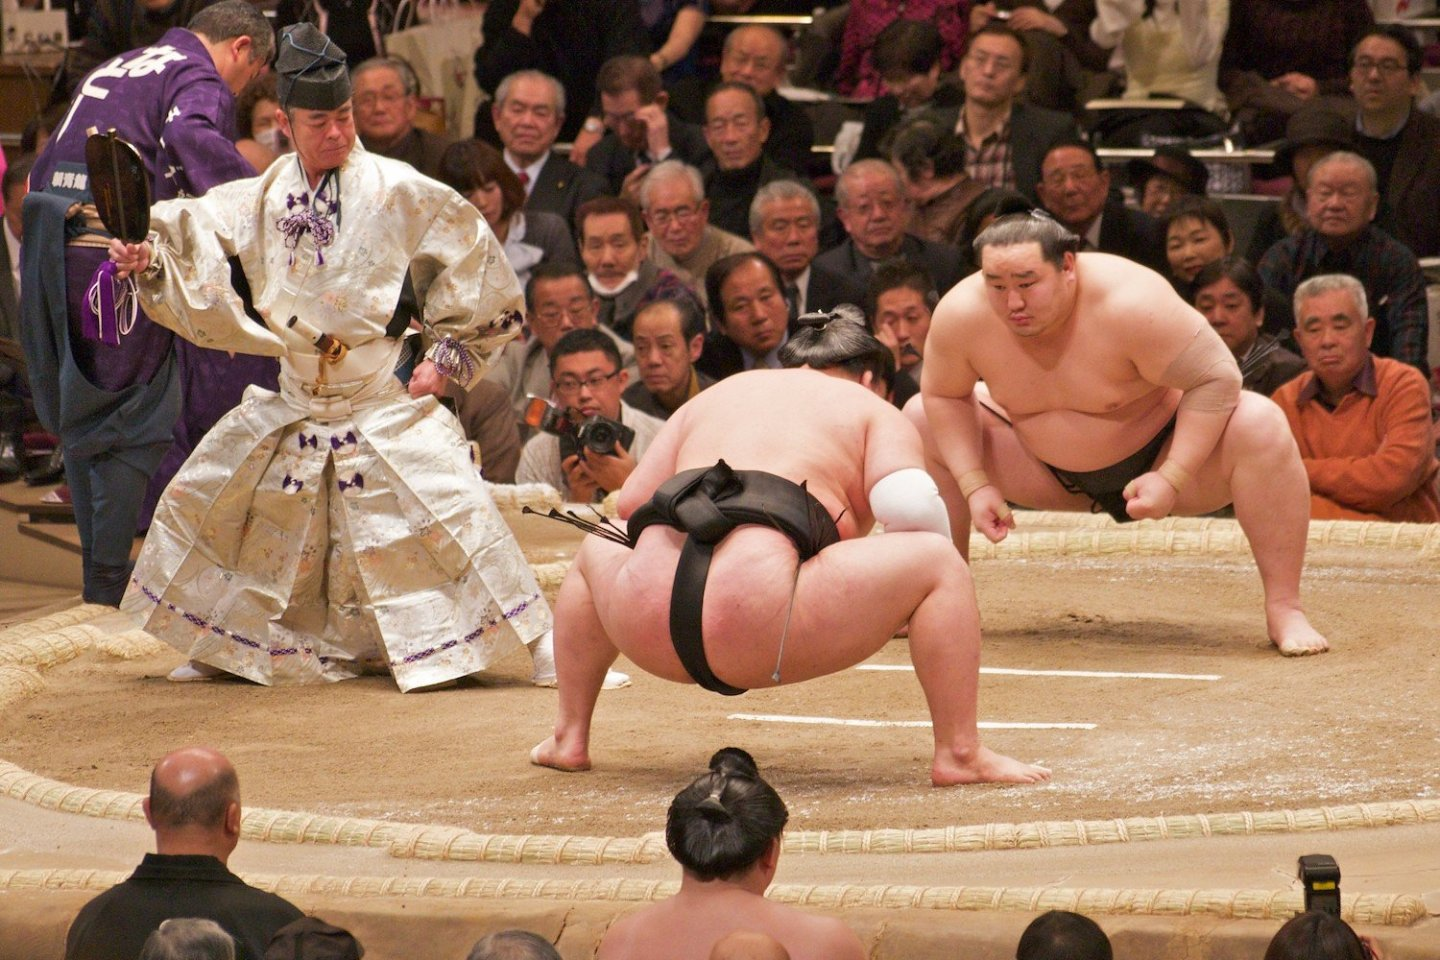 The history and culture of sports in Japan will be explored at the event